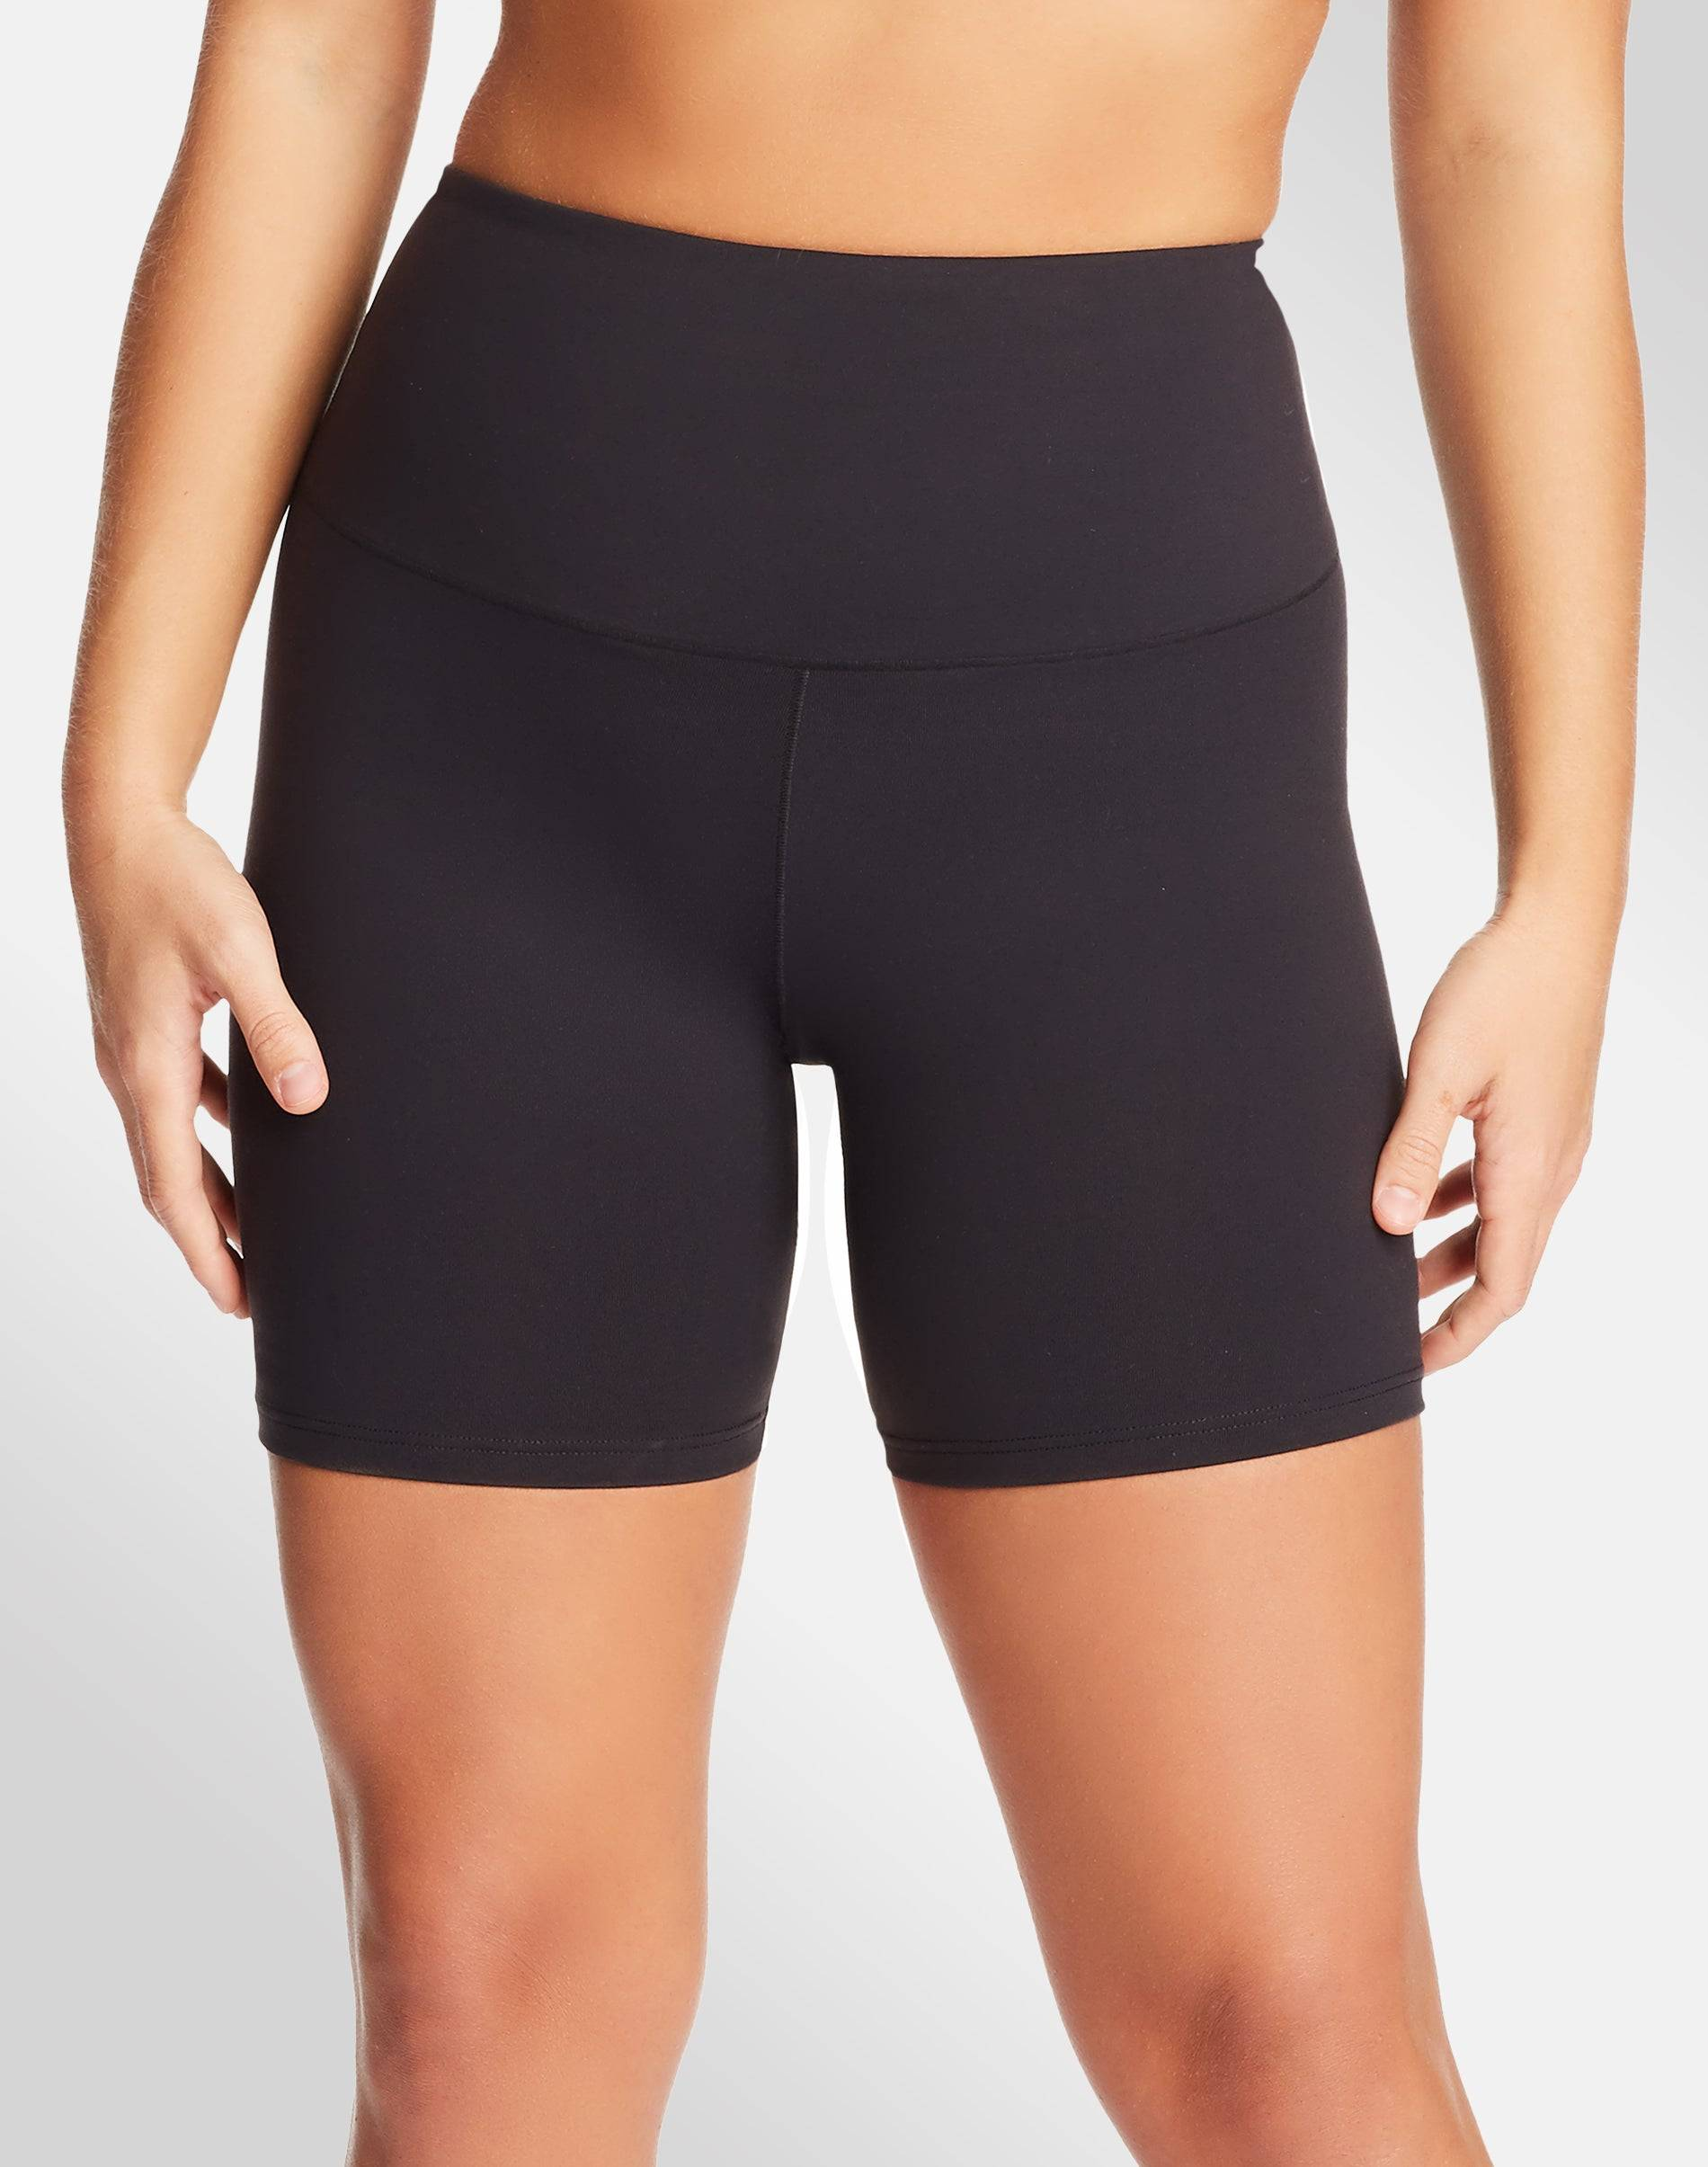 Maidenform Bike Short with Cool Comfort Black 2XL Women's